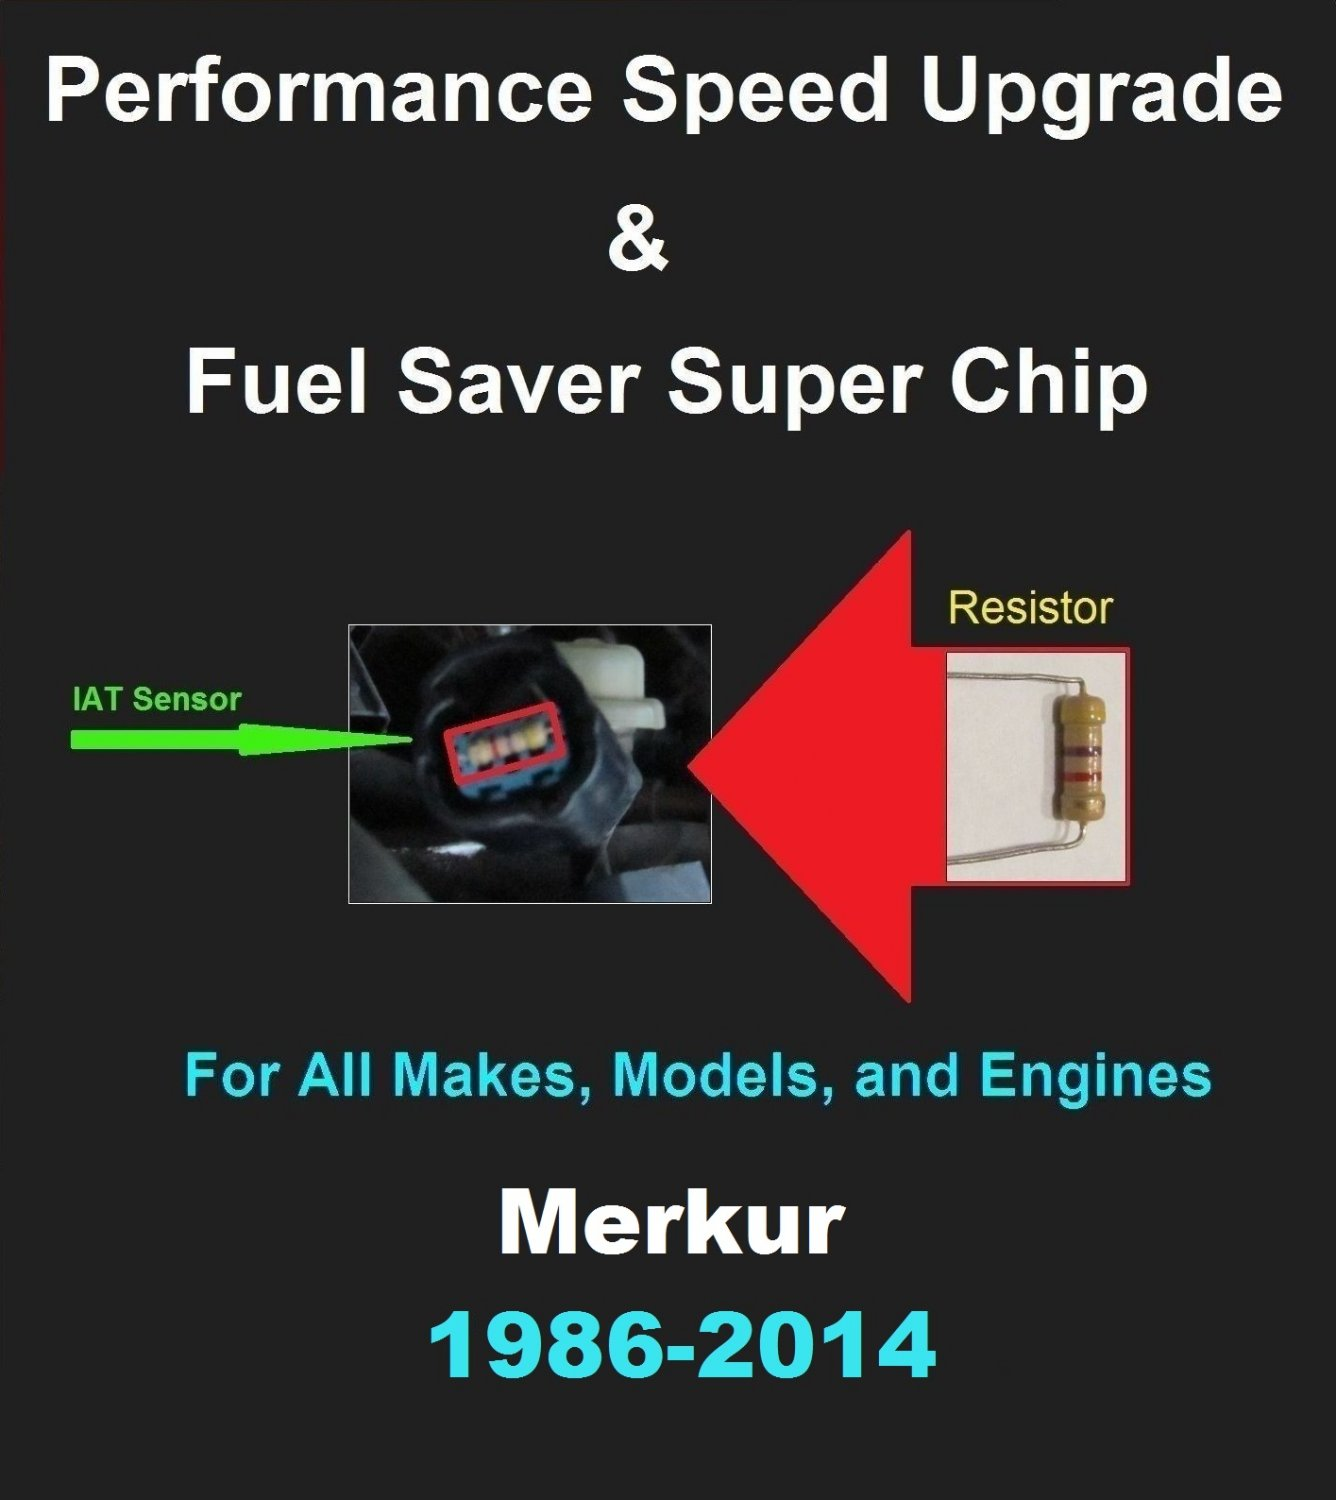 Merkur Performance IAT Sensor Resistor Chip Mod Kit Increase MPG HP Speed Power Super Fuel Gas Saver